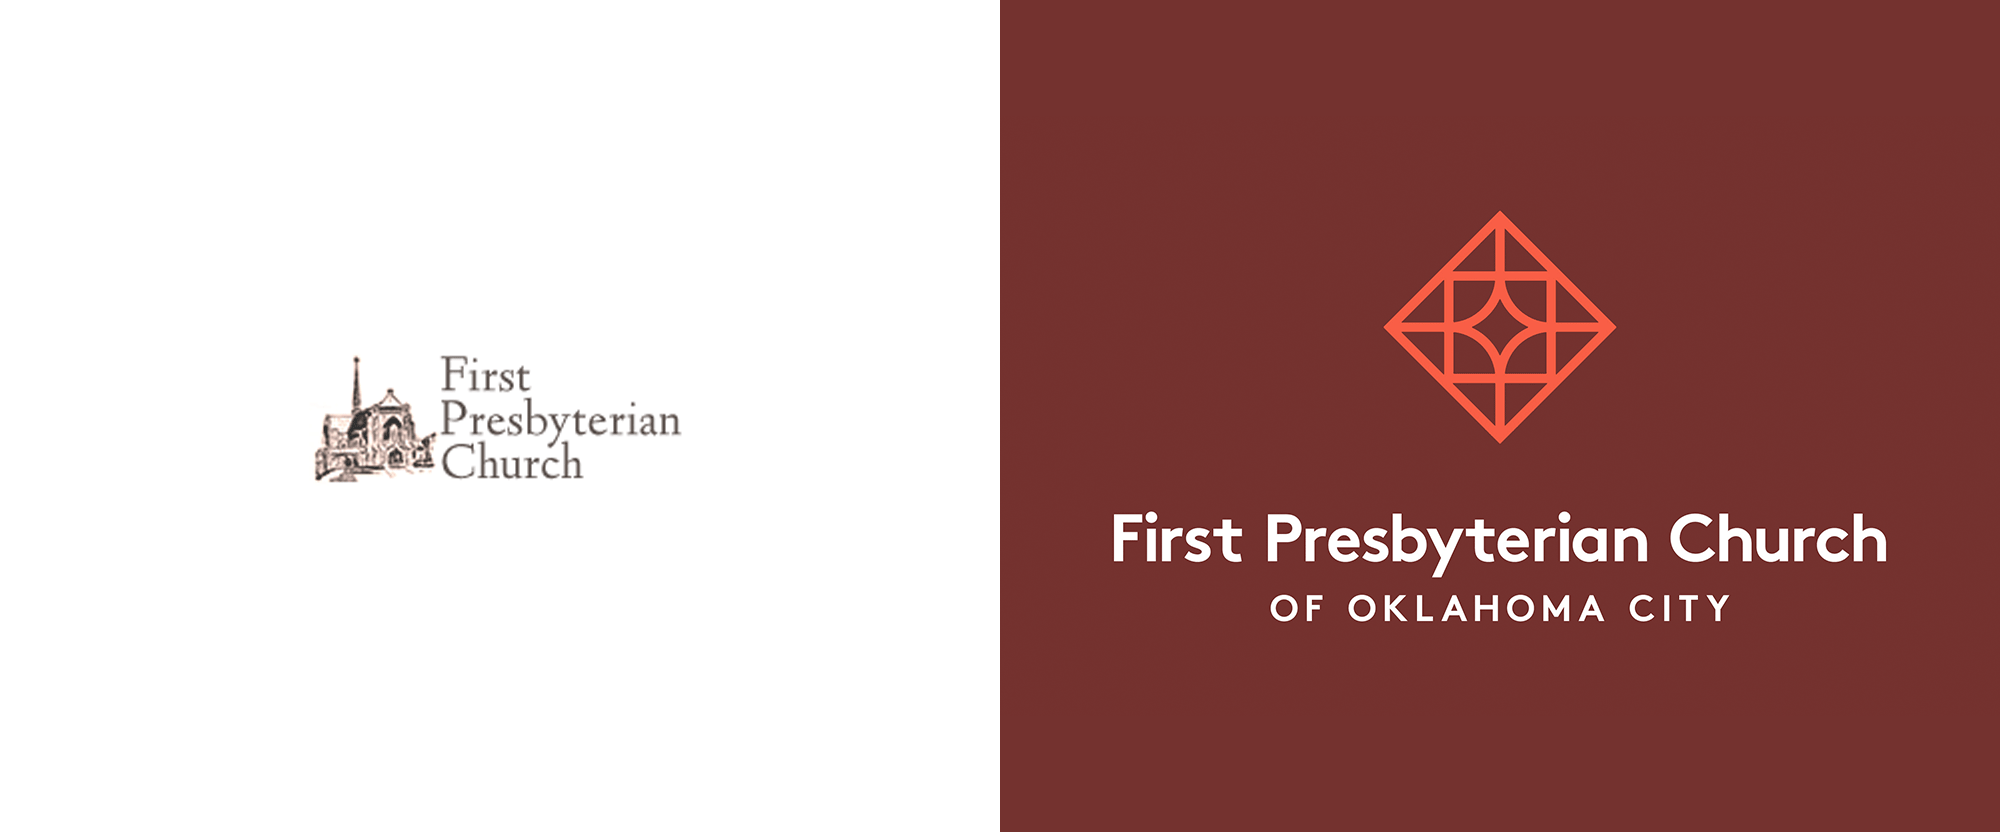 New Logo and Identity for First Presbyterian Church of Oklahoma City by J.D. Reeves